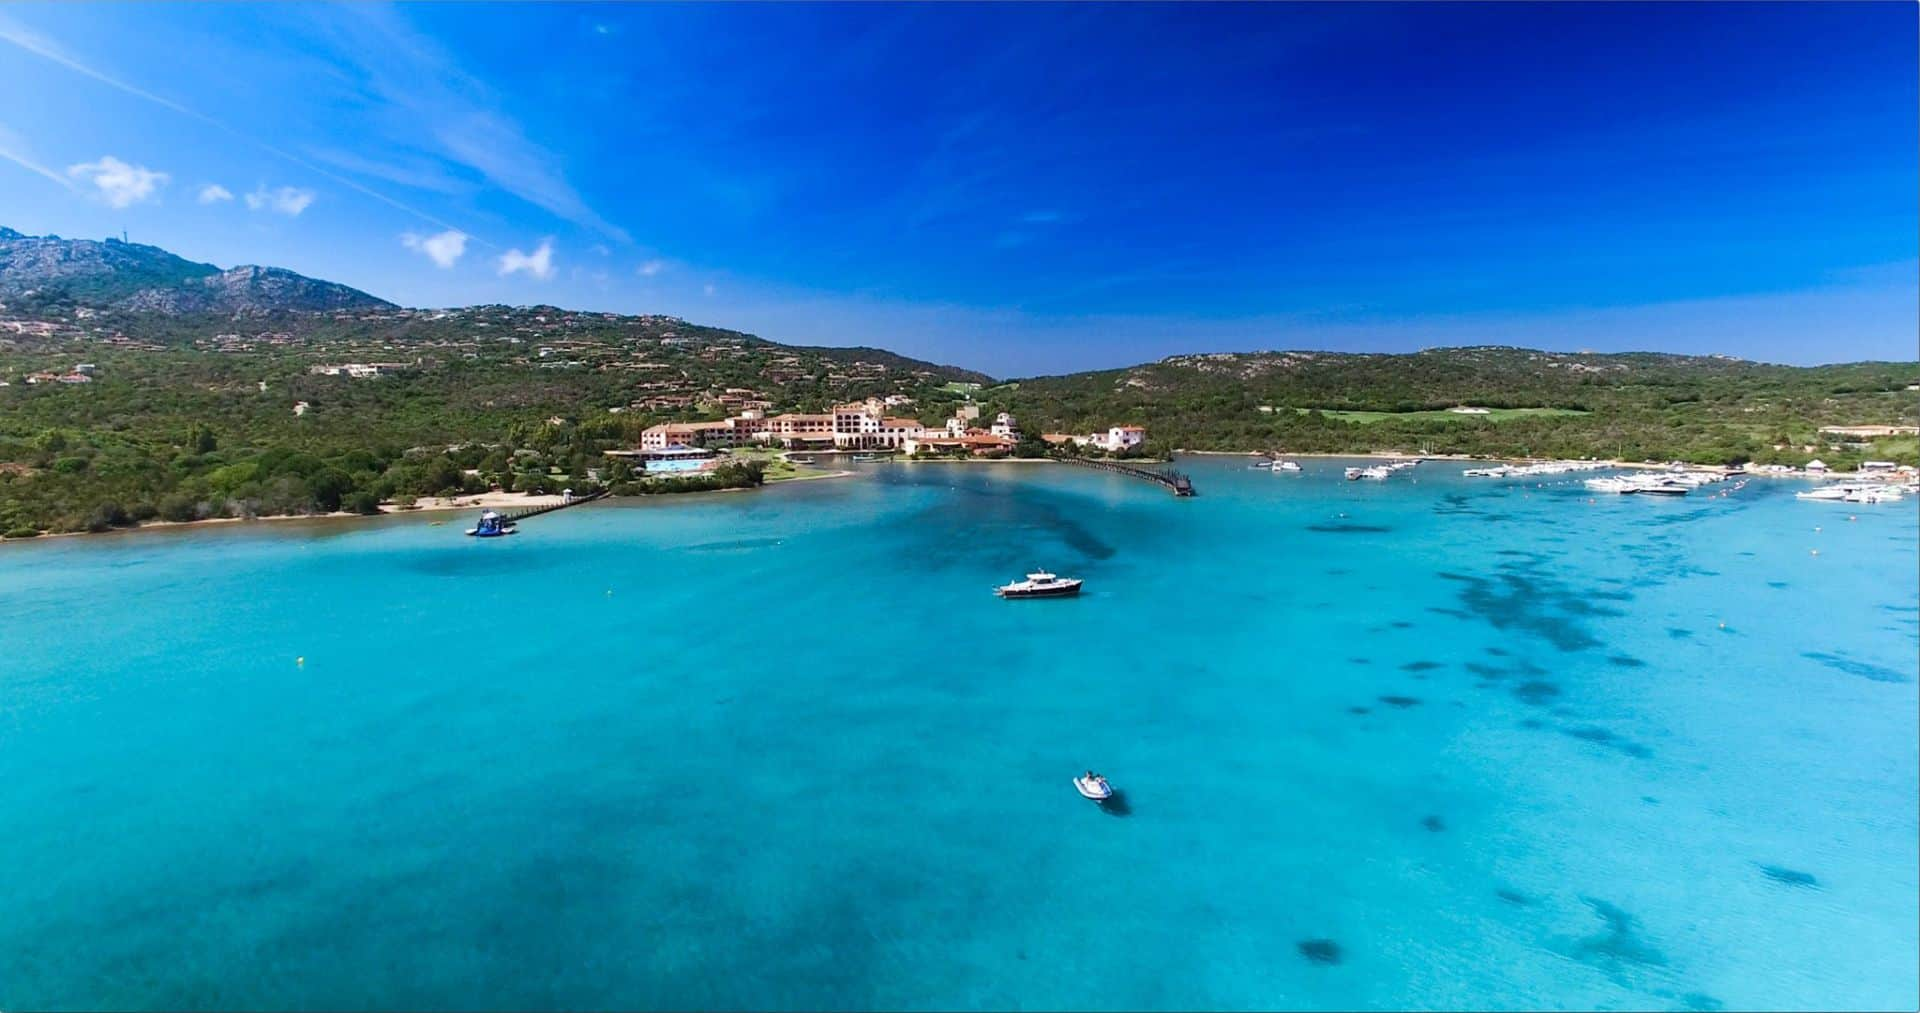 Hotel Cala di Volpe a Luxury Collection Hotel